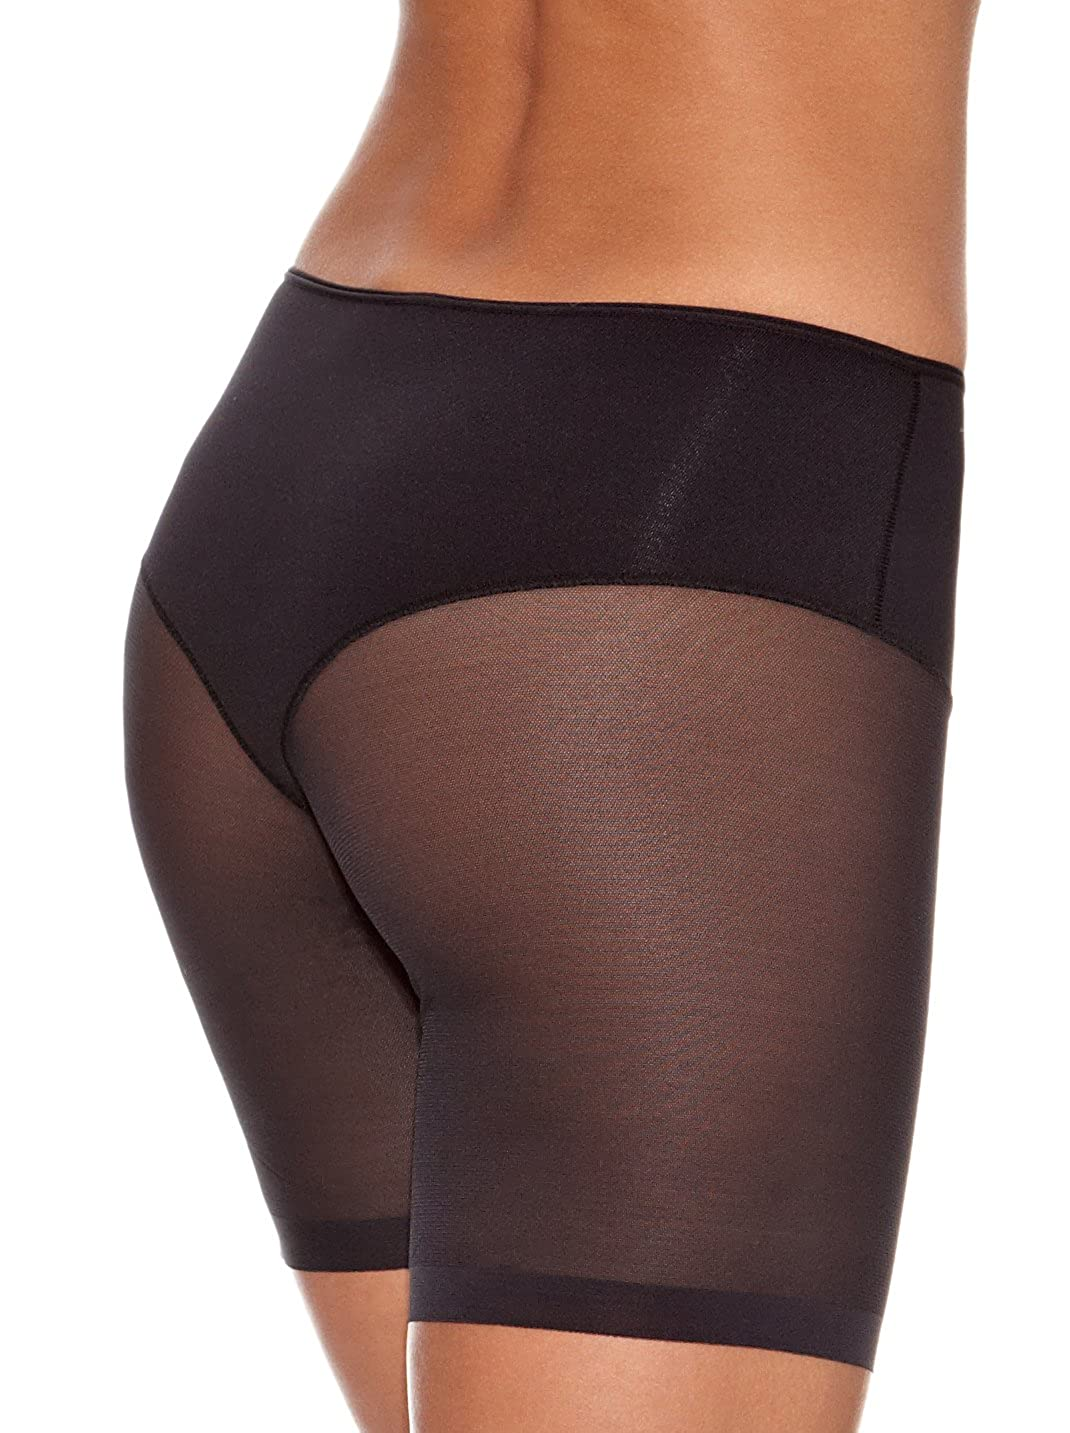 aa90a23b7c0d Leonisa Truly Invisible Control Short at Amazon Women's Clothing store: